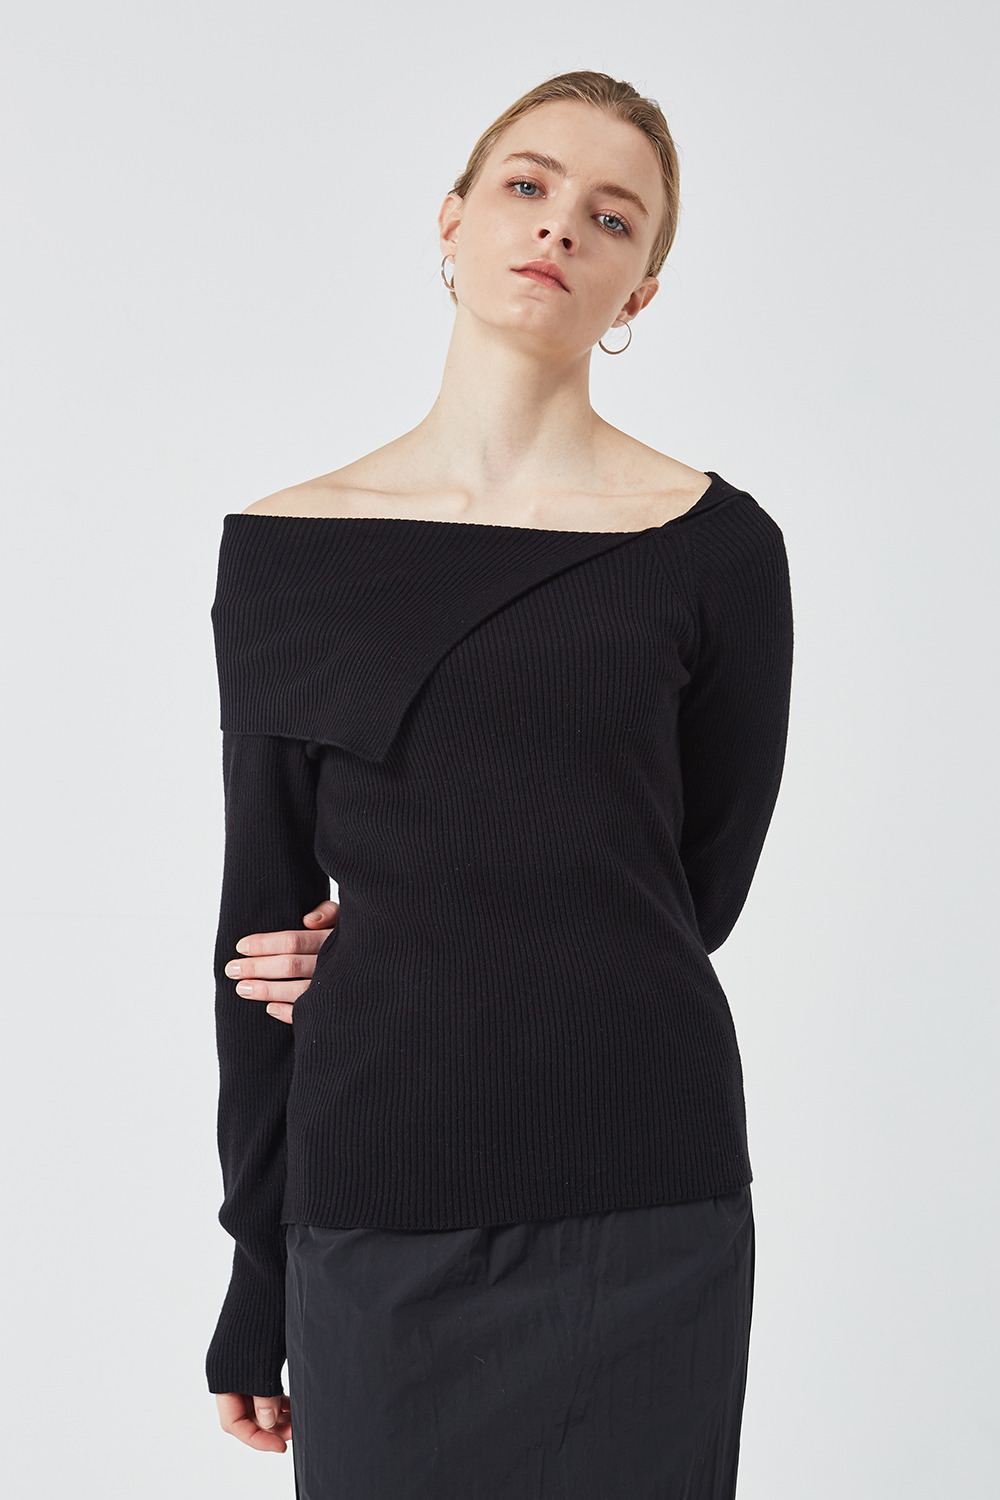 Off-Shoulder Knit Black